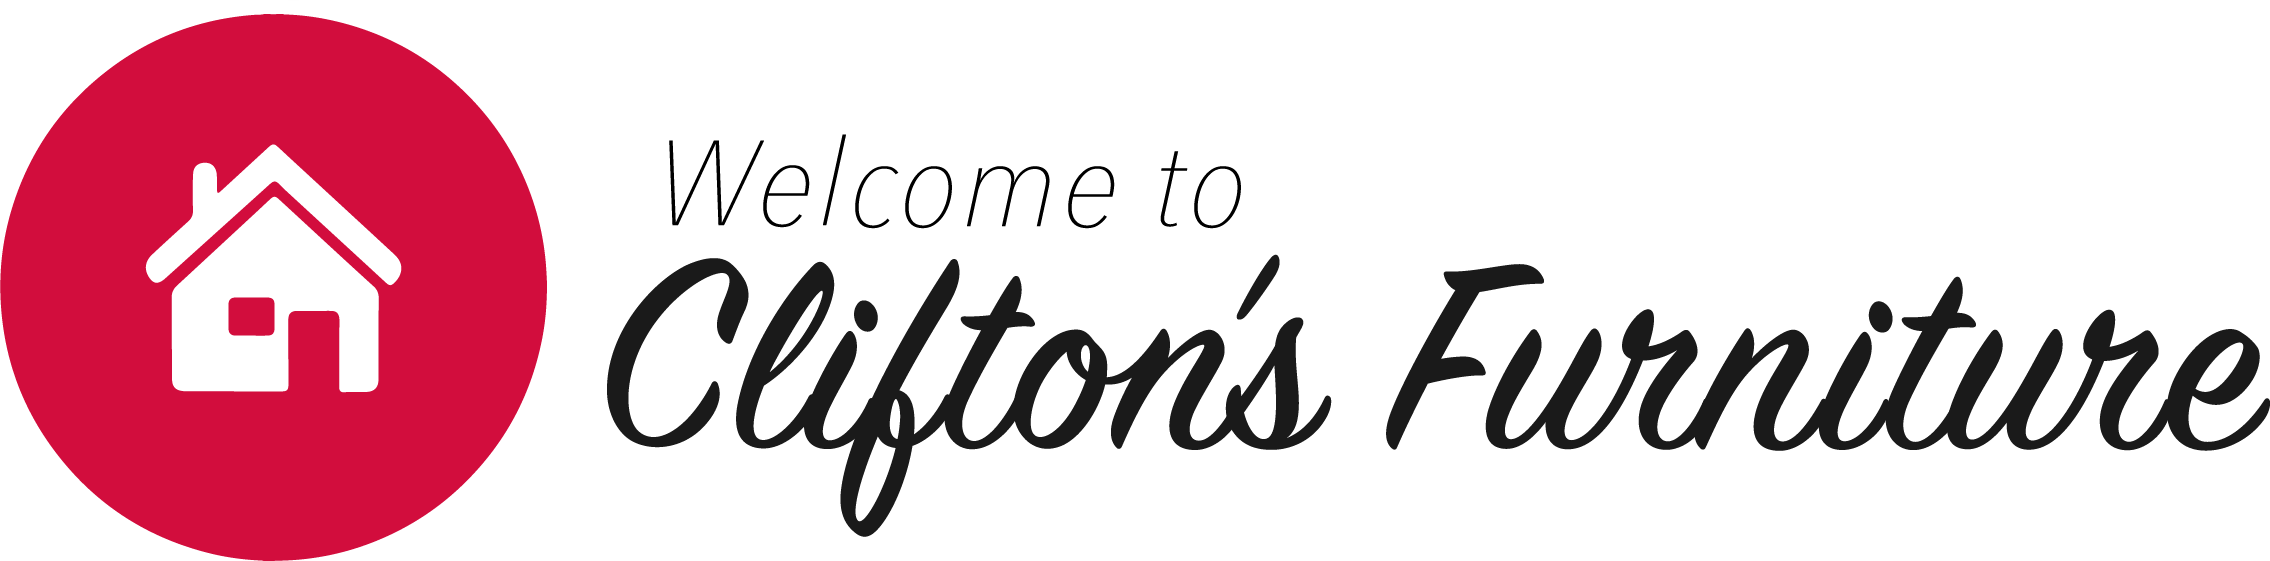 Clifton's Furniture